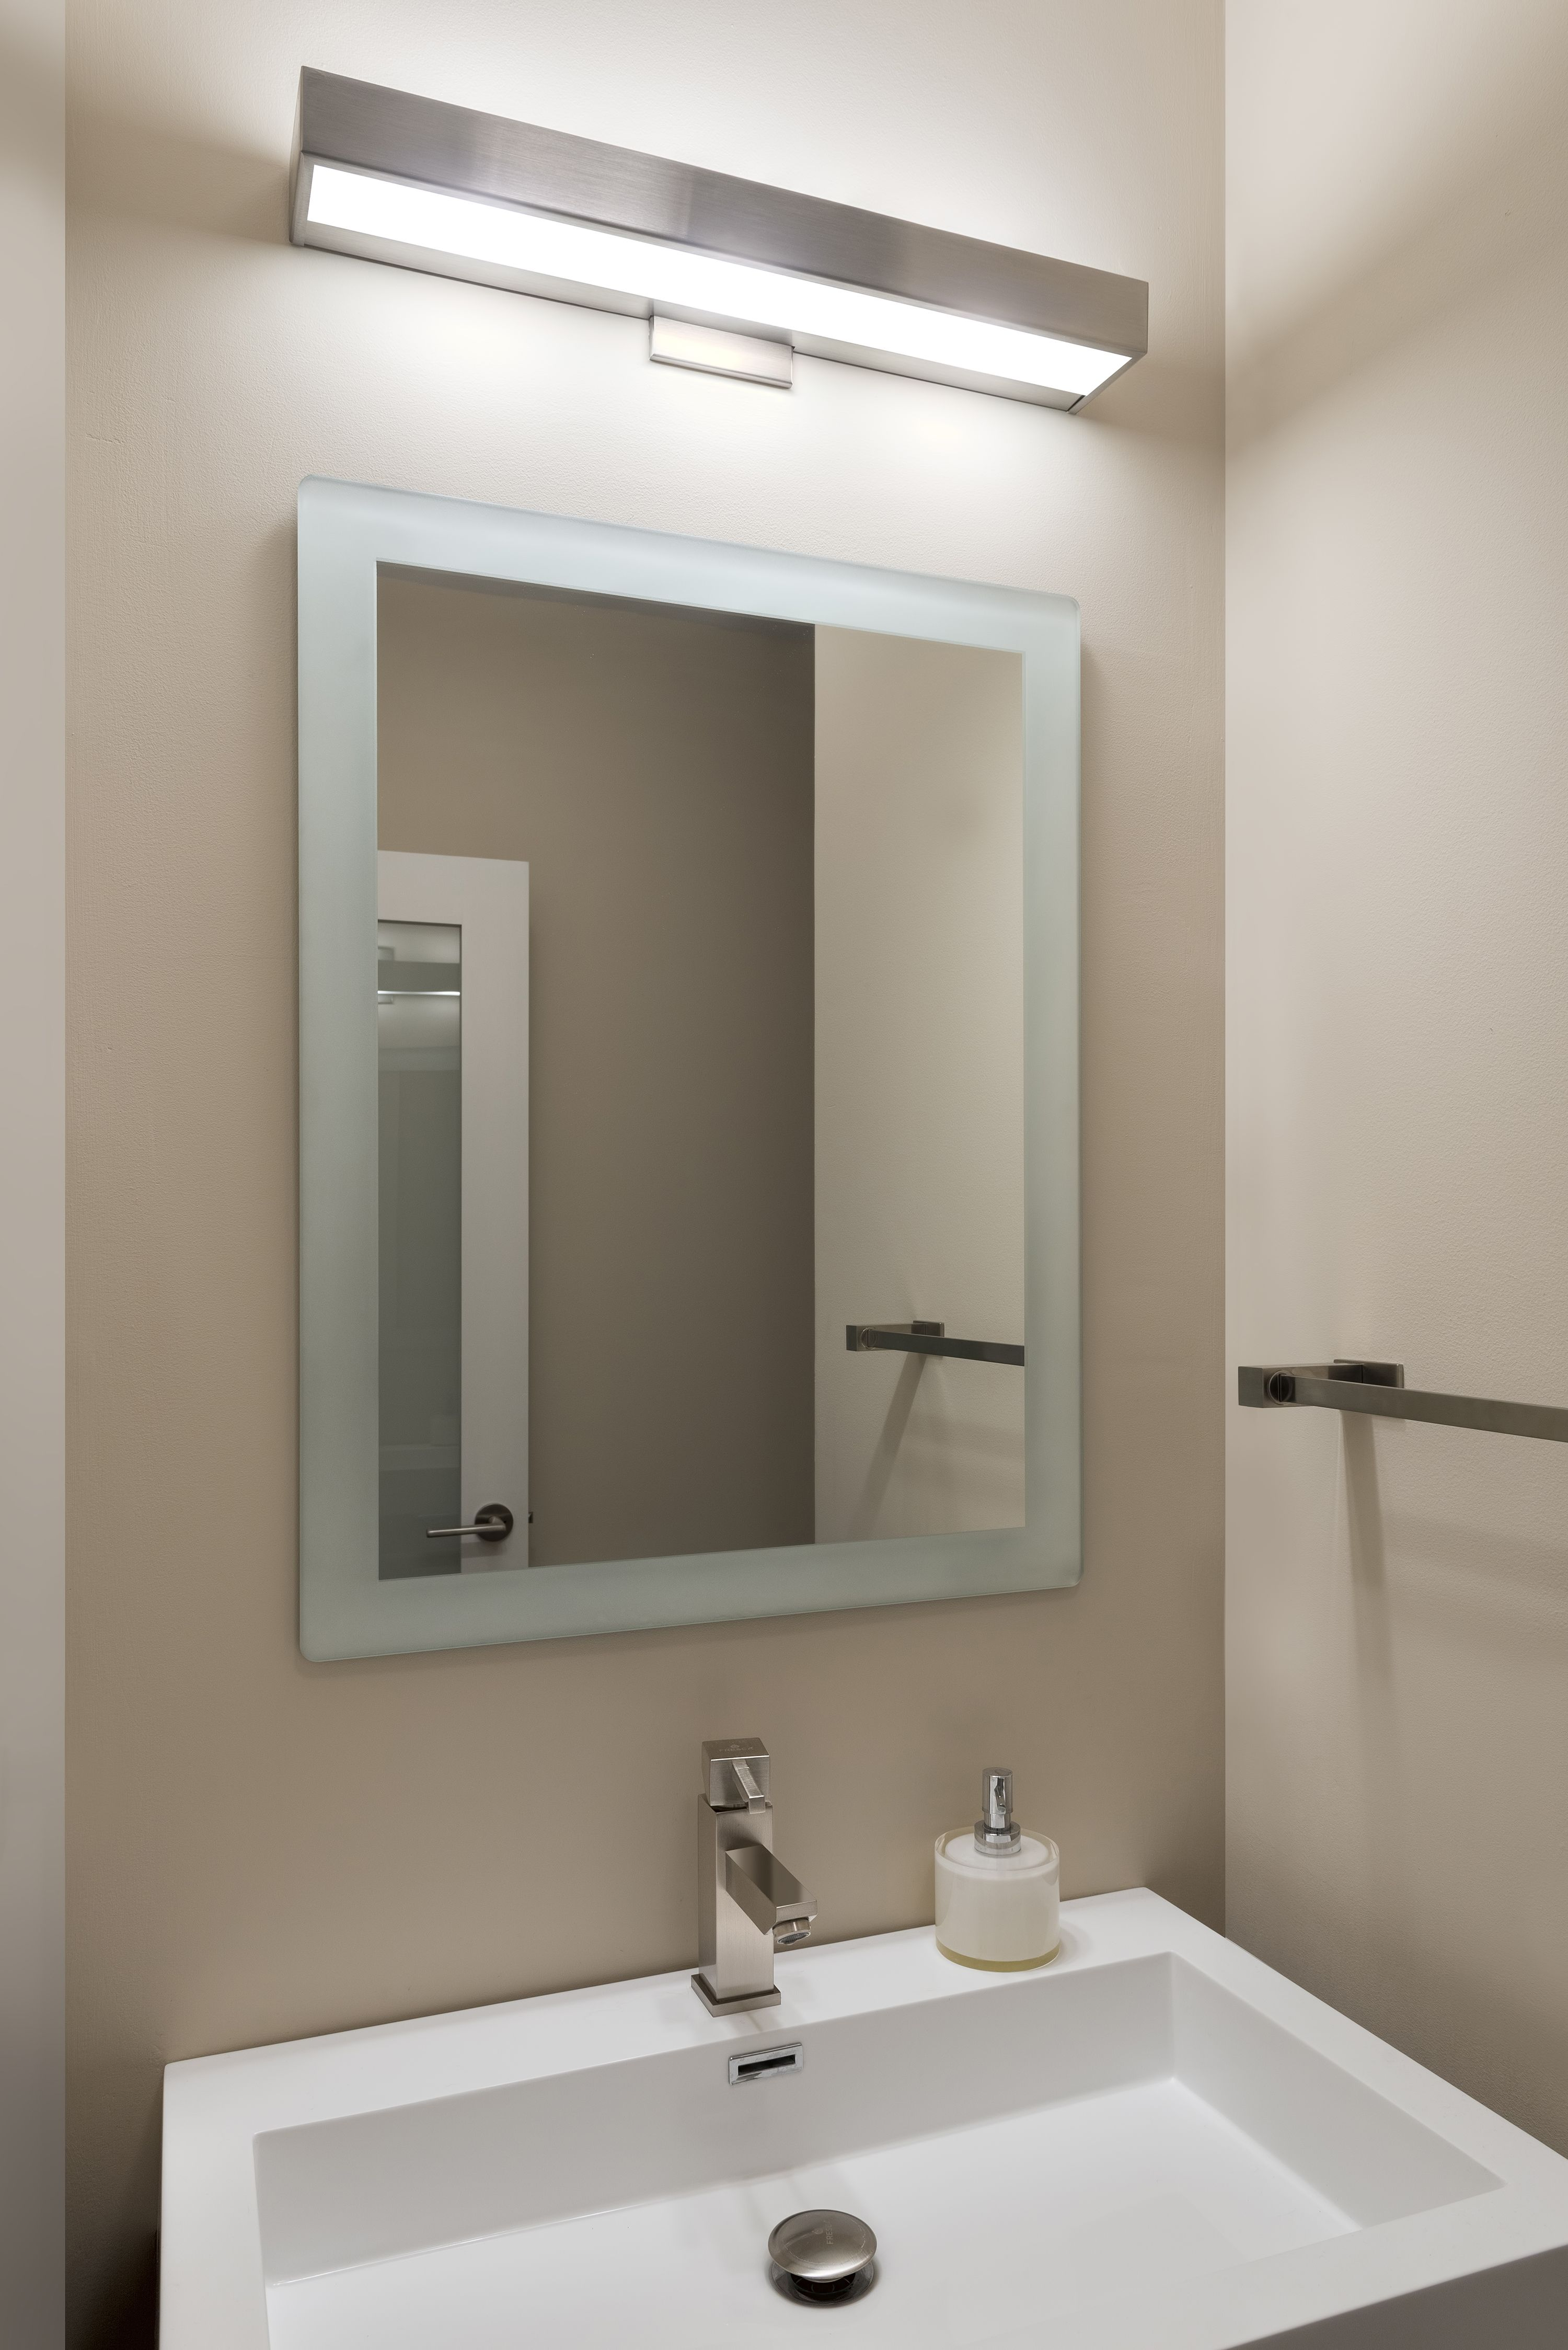 The Alpha Led Creates Great Task Lighting Ideal For Bathrooms And